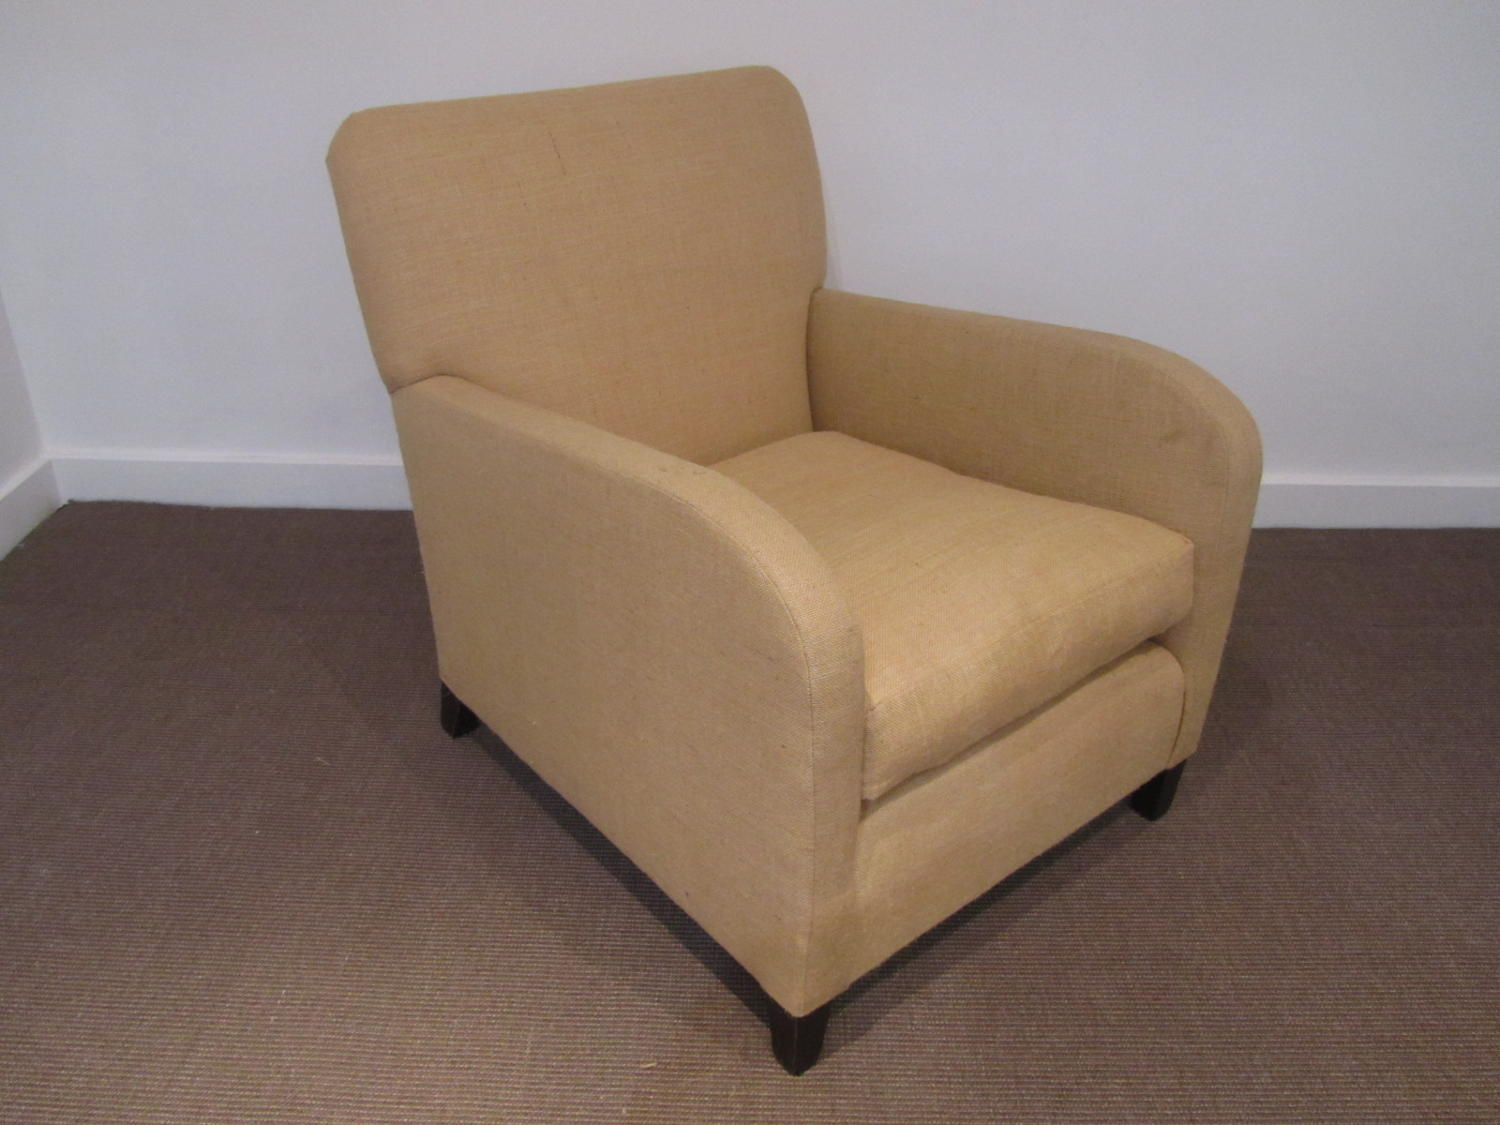 A single English art deco armchair